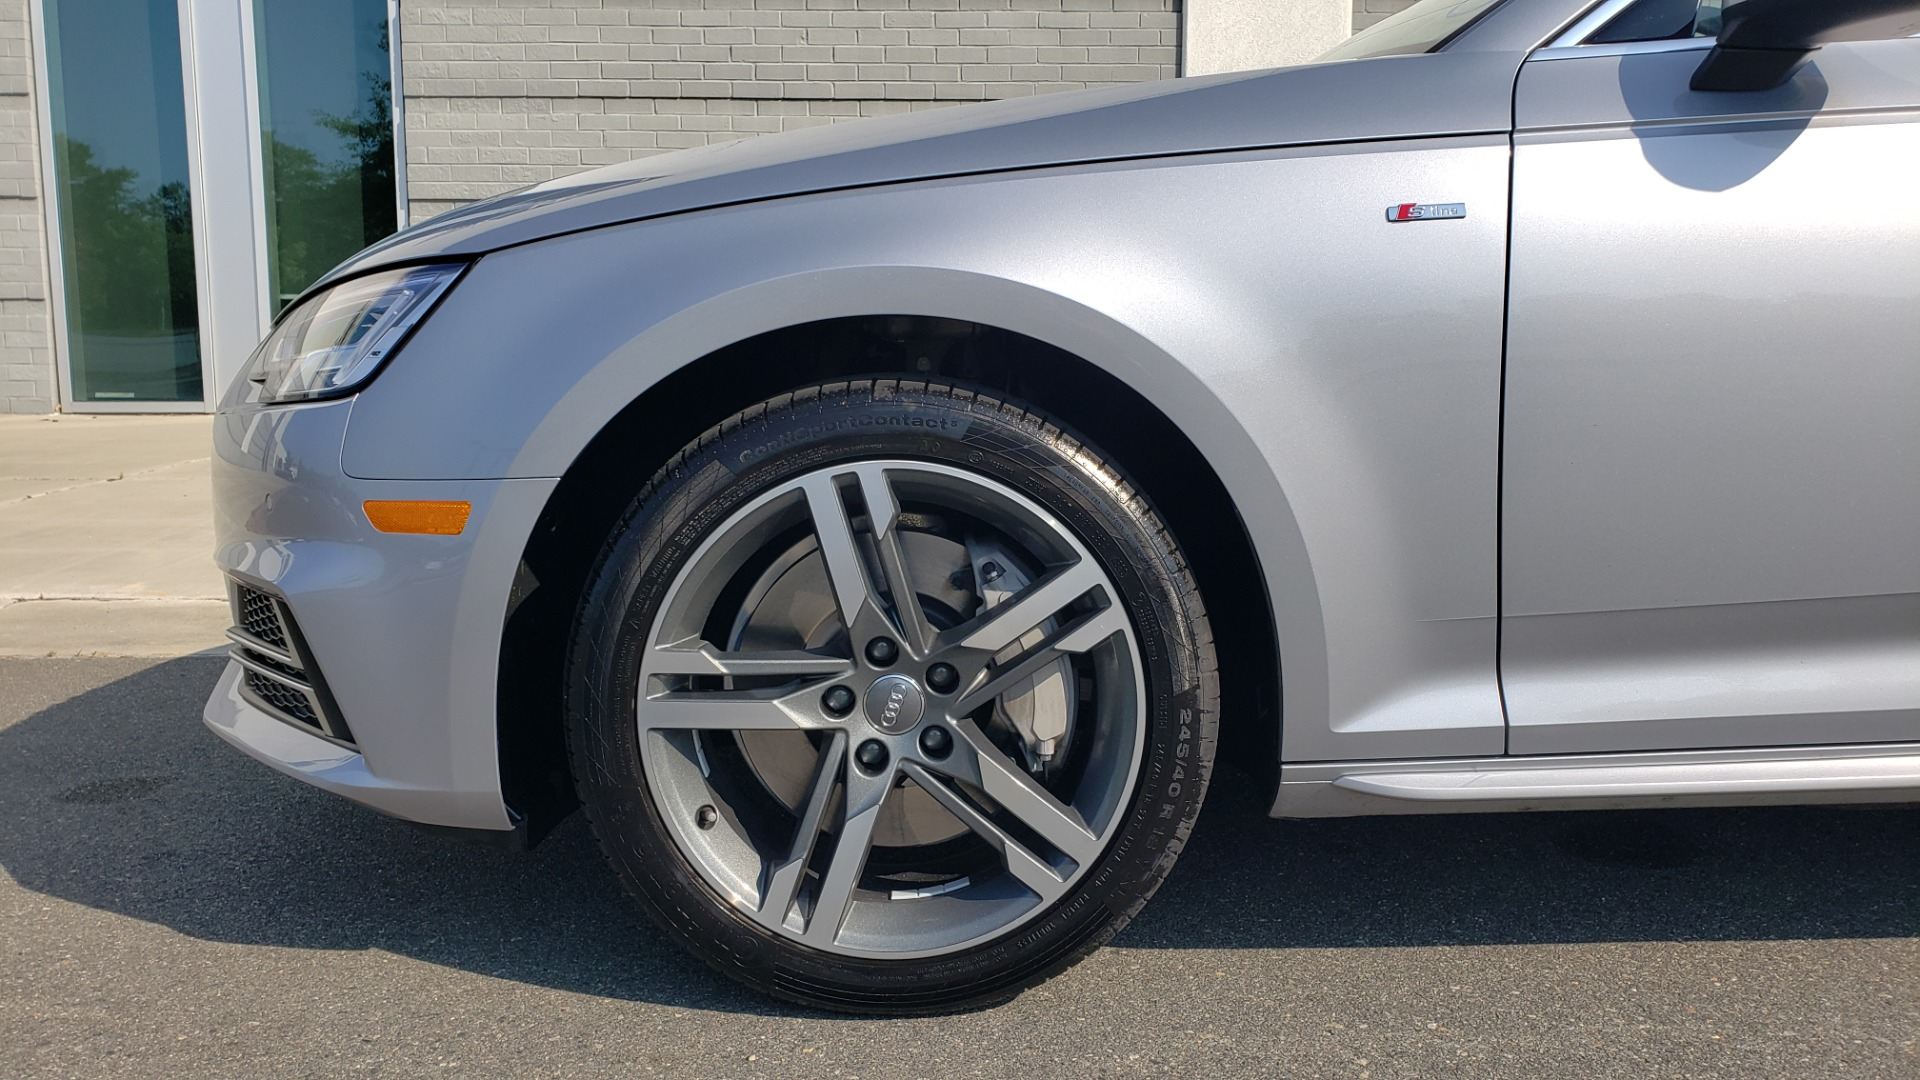 Used 2018 Audi A4 PREMIUM PLUS 2.0T / NAV / SUNROOF / B&O SND / CLD WTHR / REARVIEW for sale $29,395 at Formula Imports in Charlotte NC 28227 80